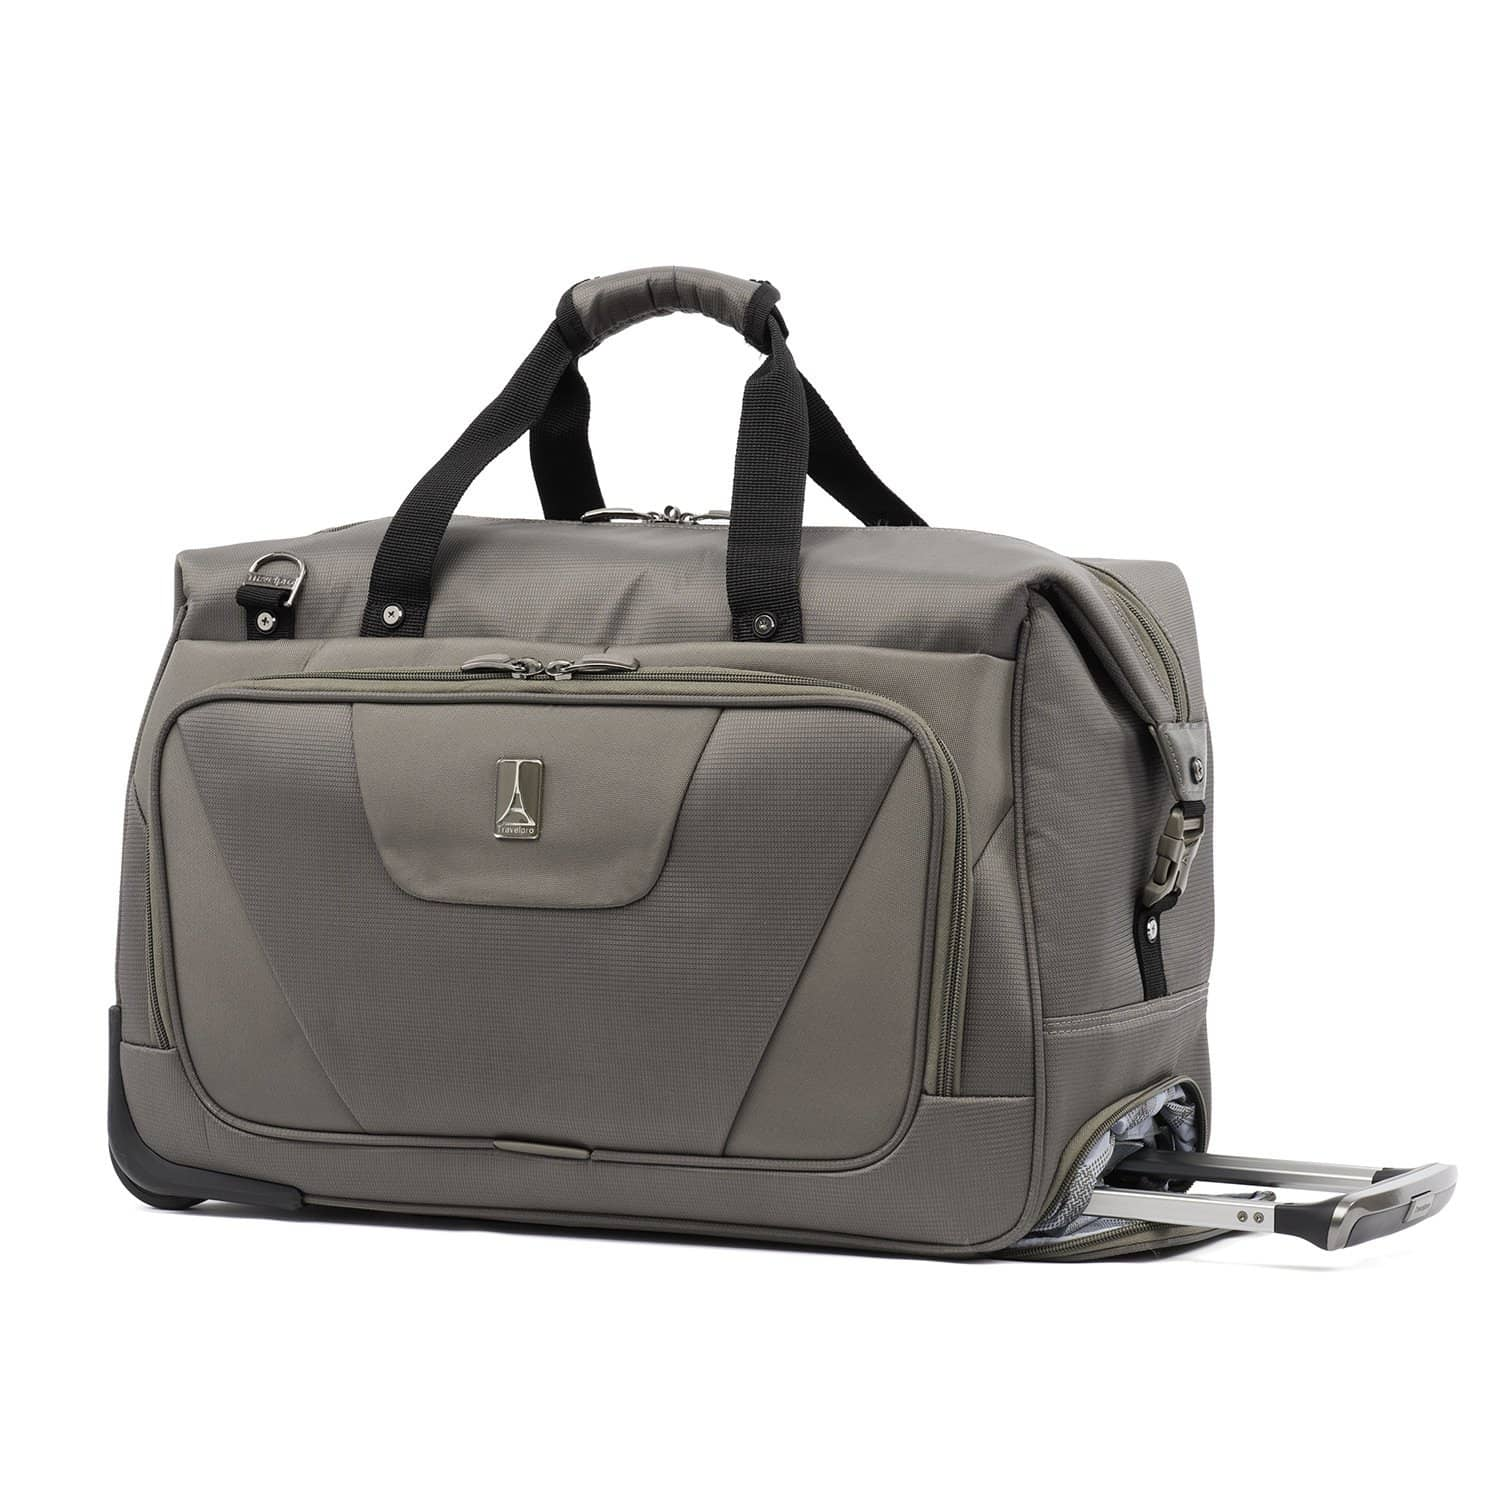 Travelpro Maxlite®4 Carry-on Rolling Duffle SLATE GREEN